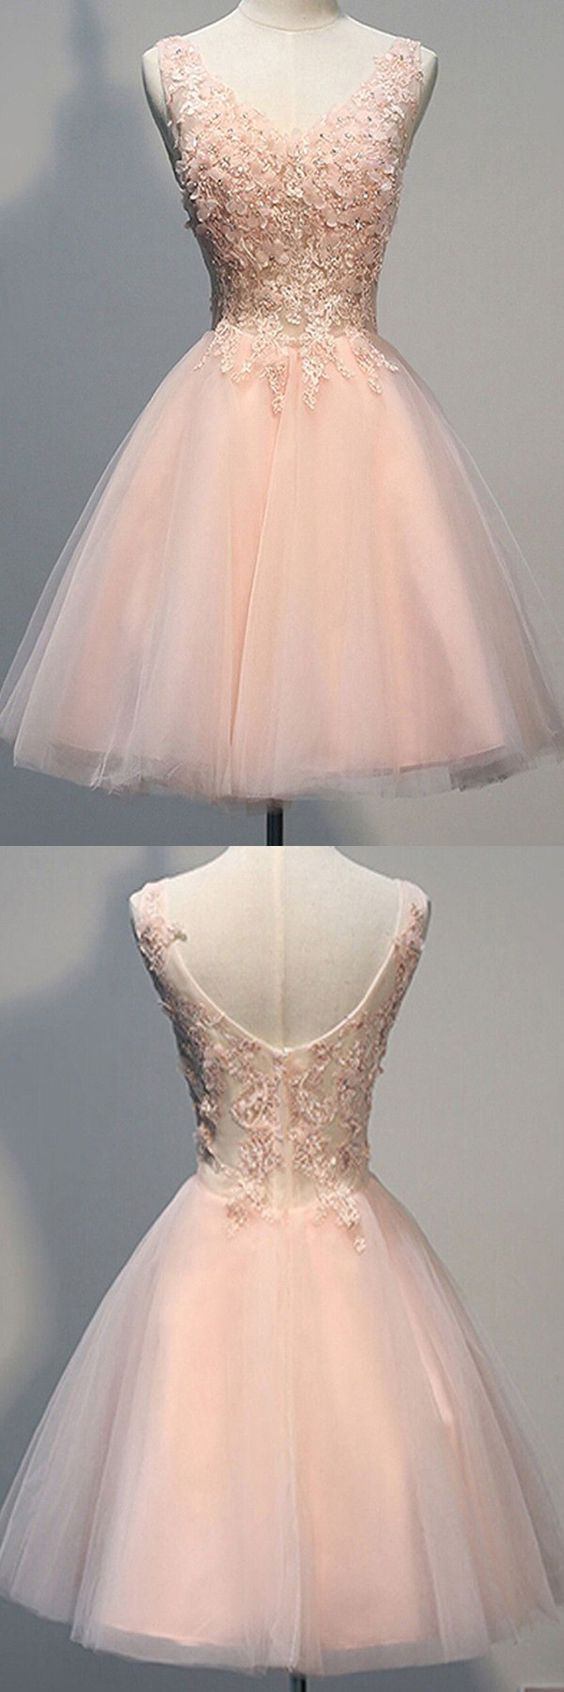 Awesome vneck sleeveless kneelength pearl pink open back